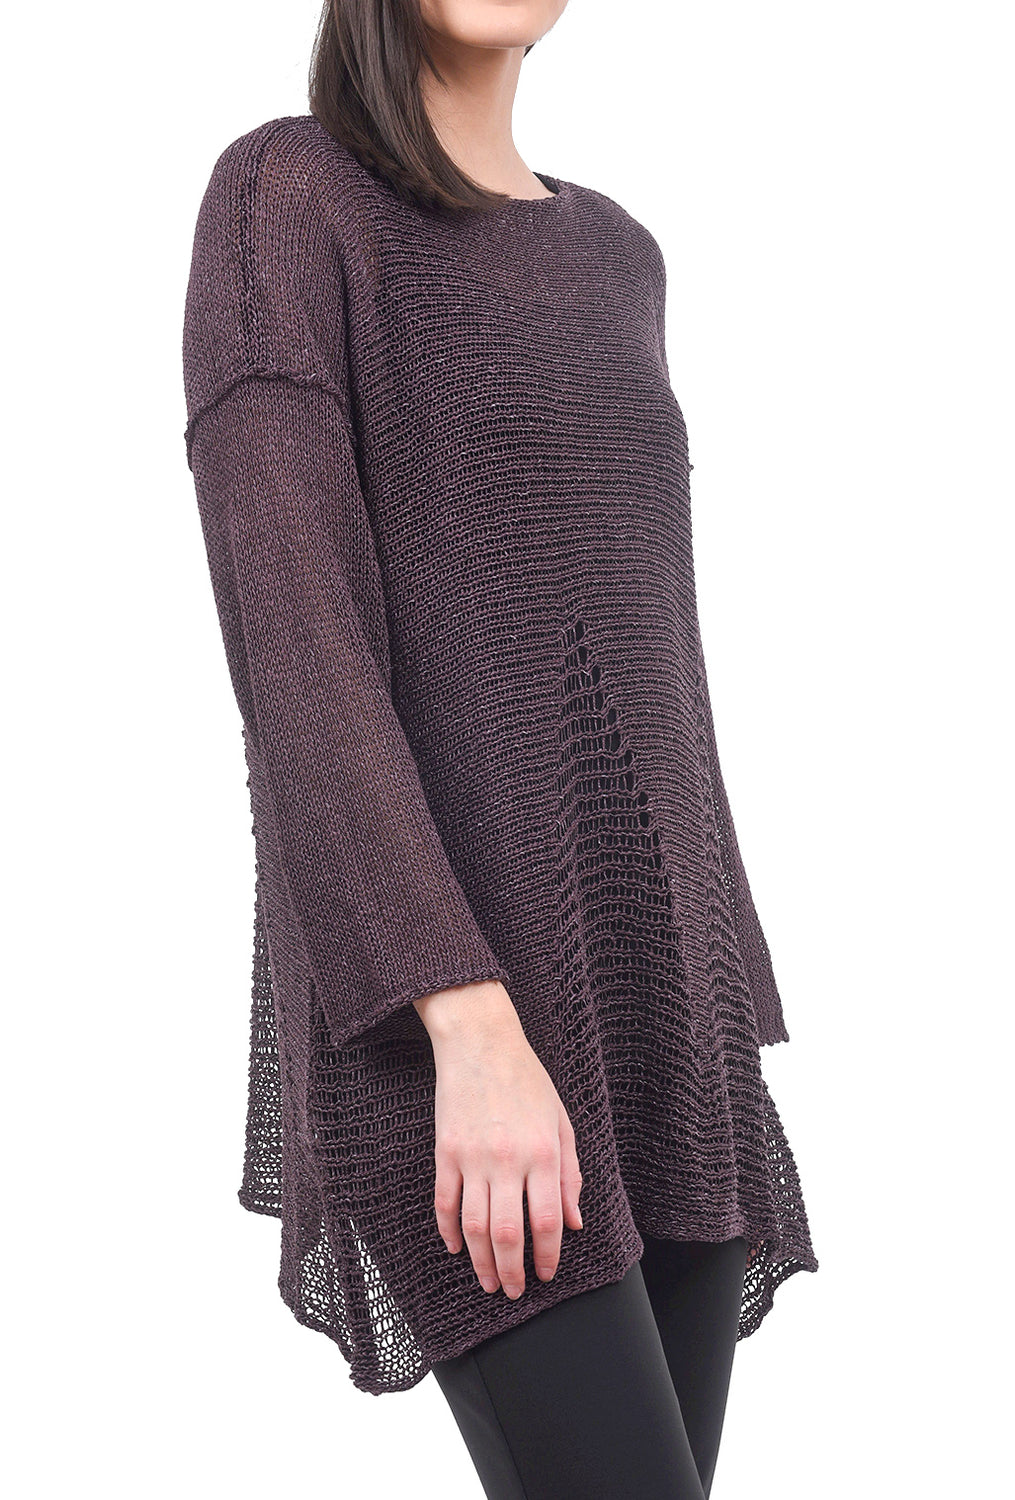 B&K Moda Dropstitch Detail Sweater, Plum One Size Plum